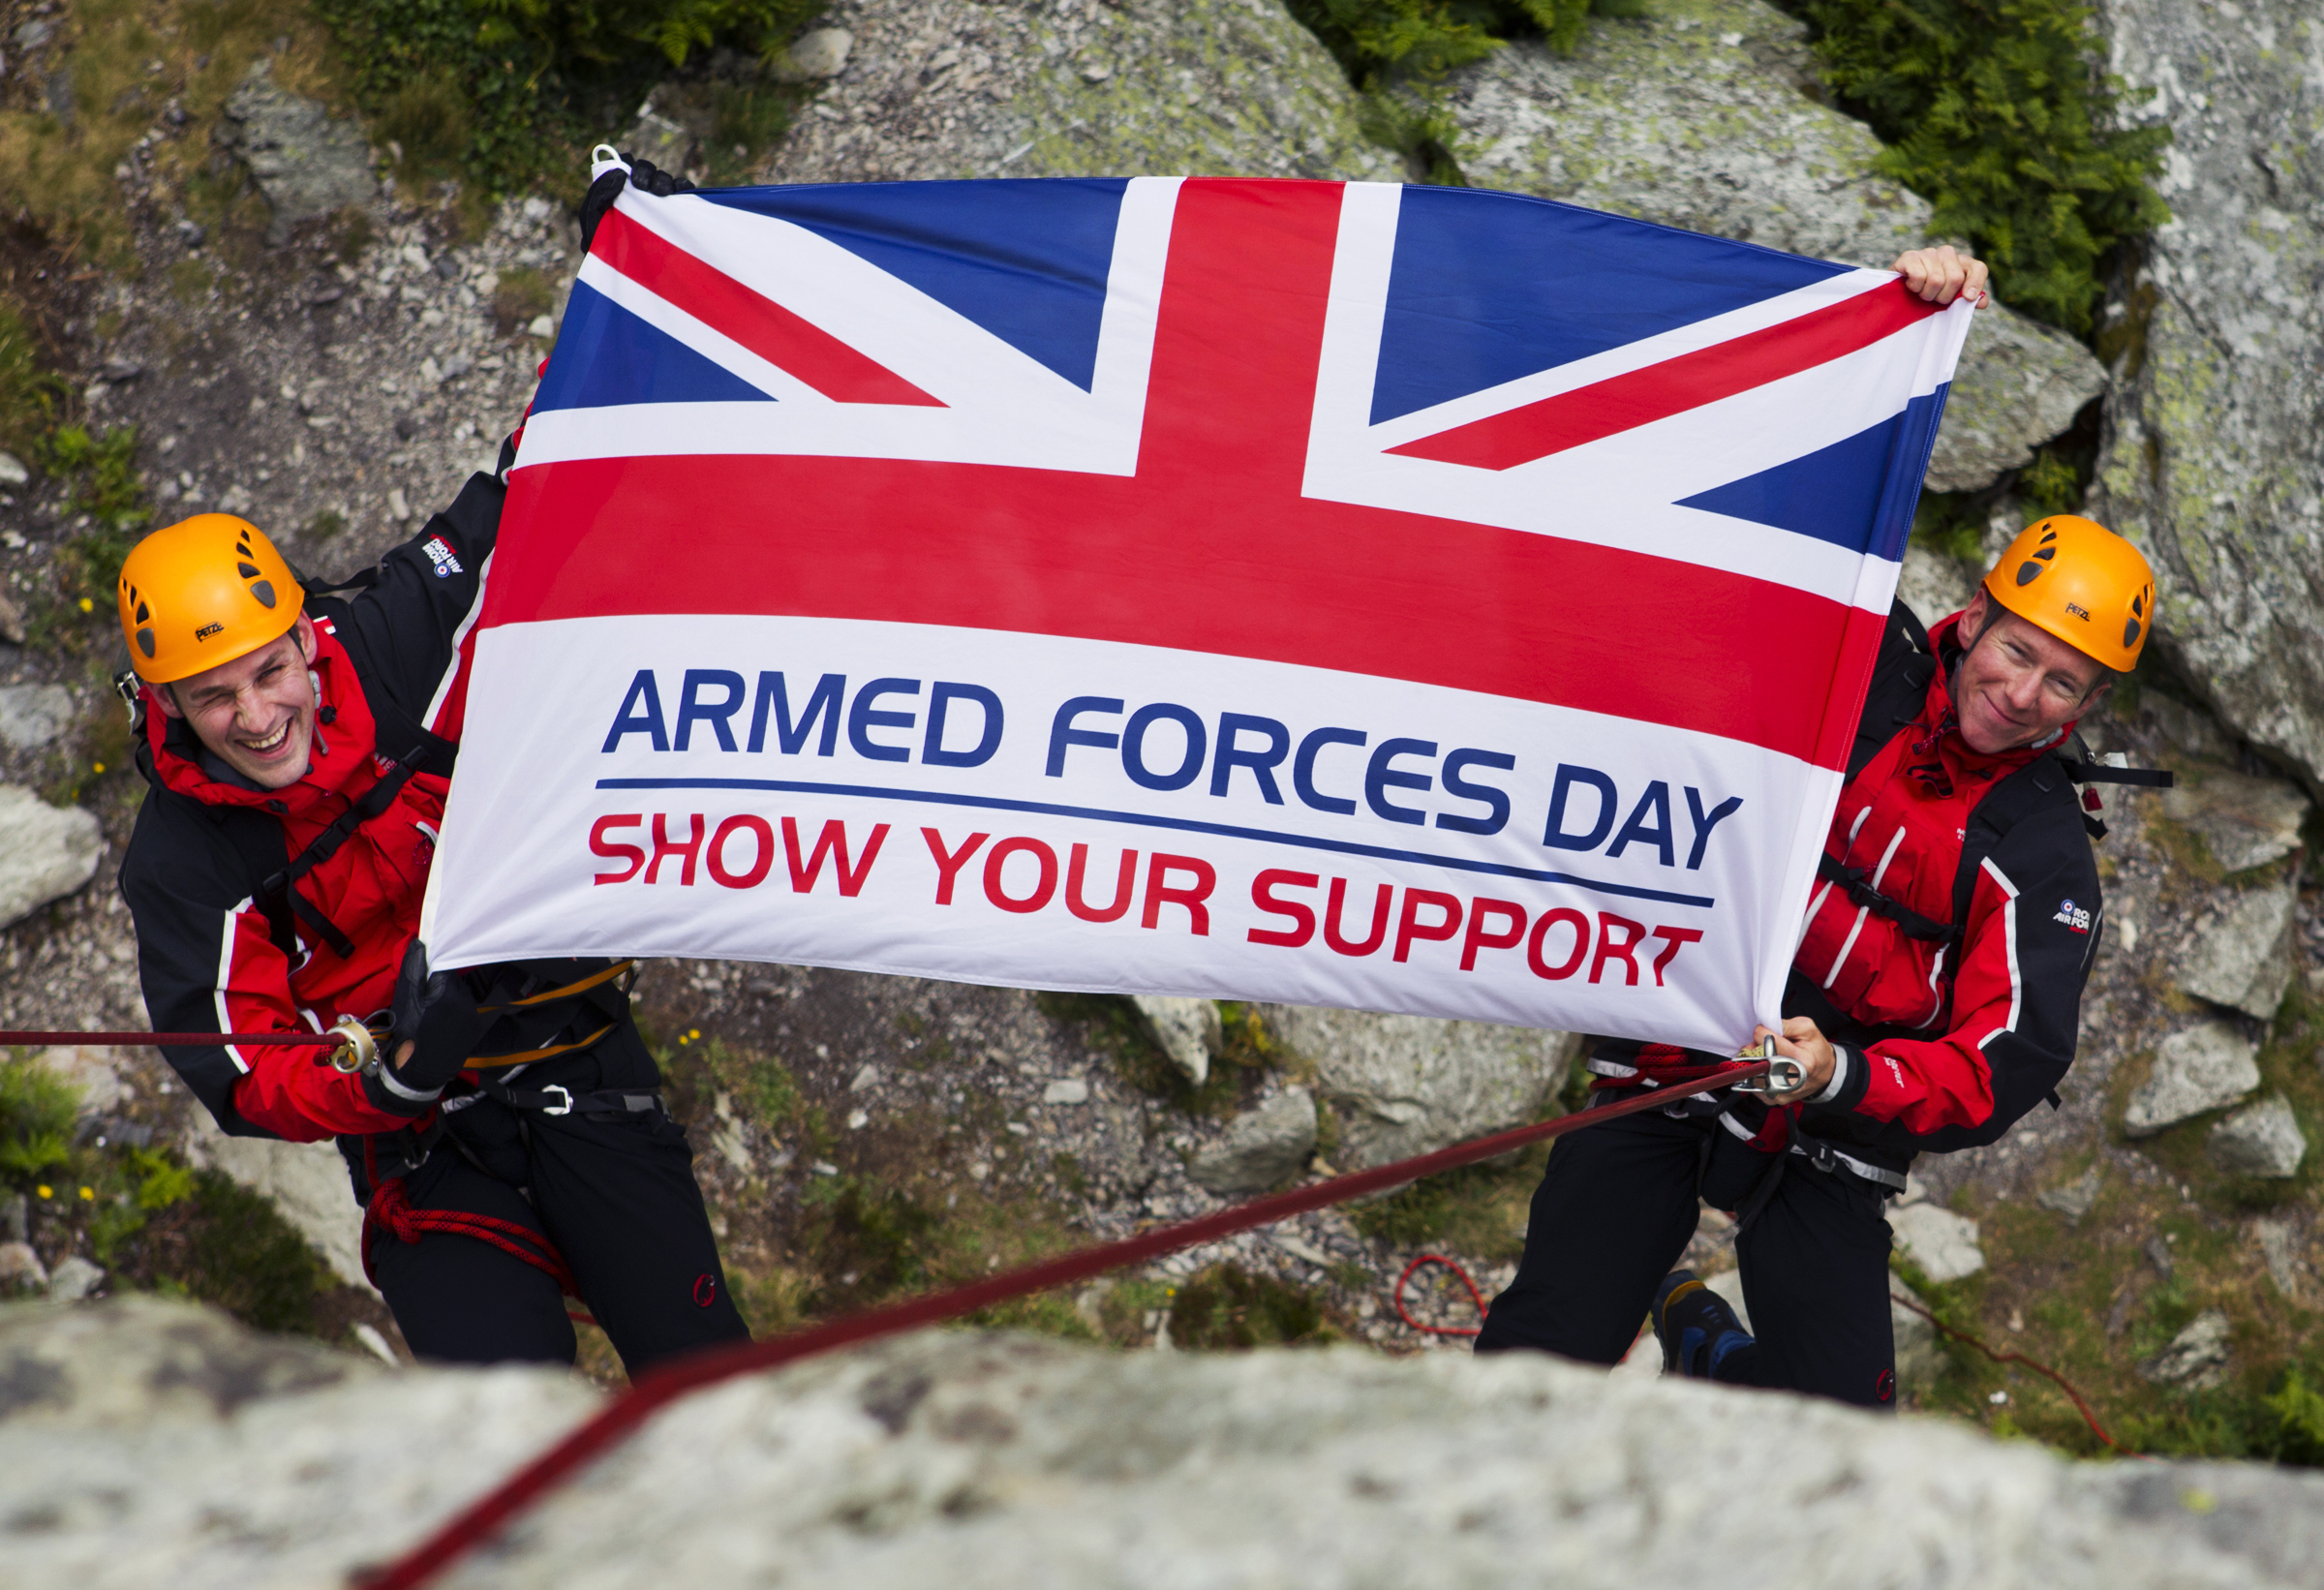 RAF Mountain Rescue Team are Flying the Armed Forces Day Flag